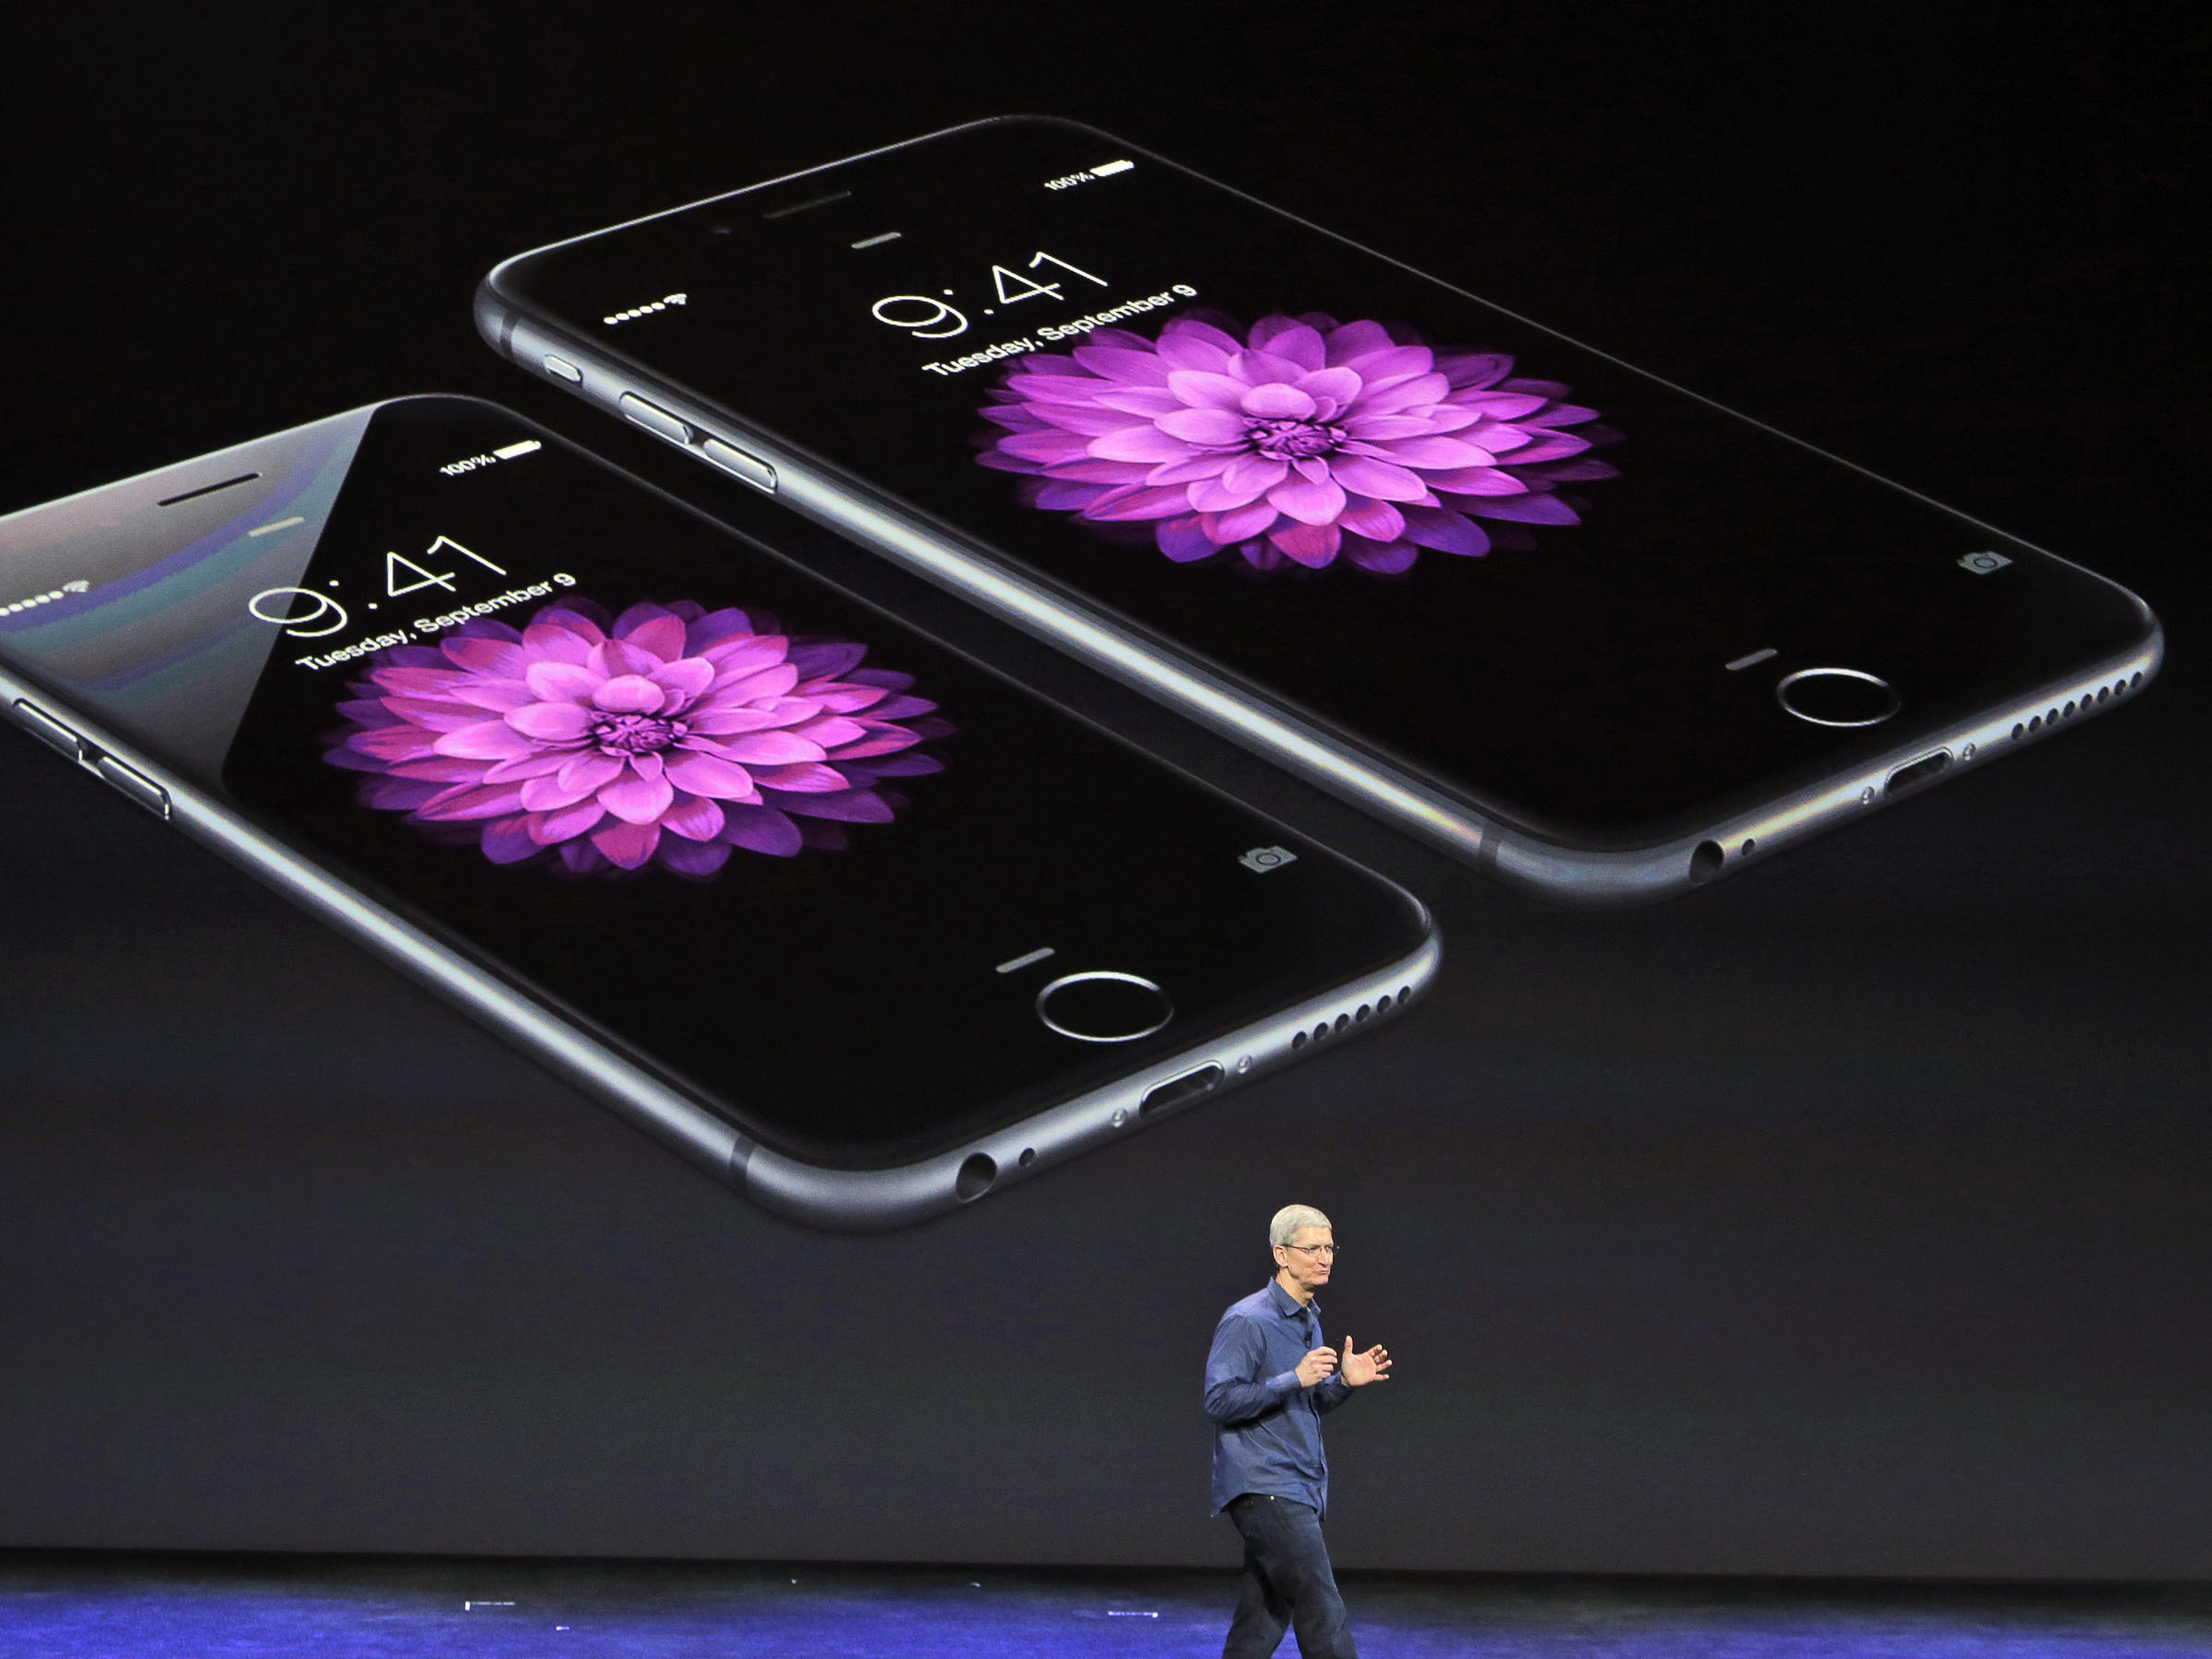 Apple CEO Tim Cook discusses the iPhone 6 and iPhone 6 Plus late last ...